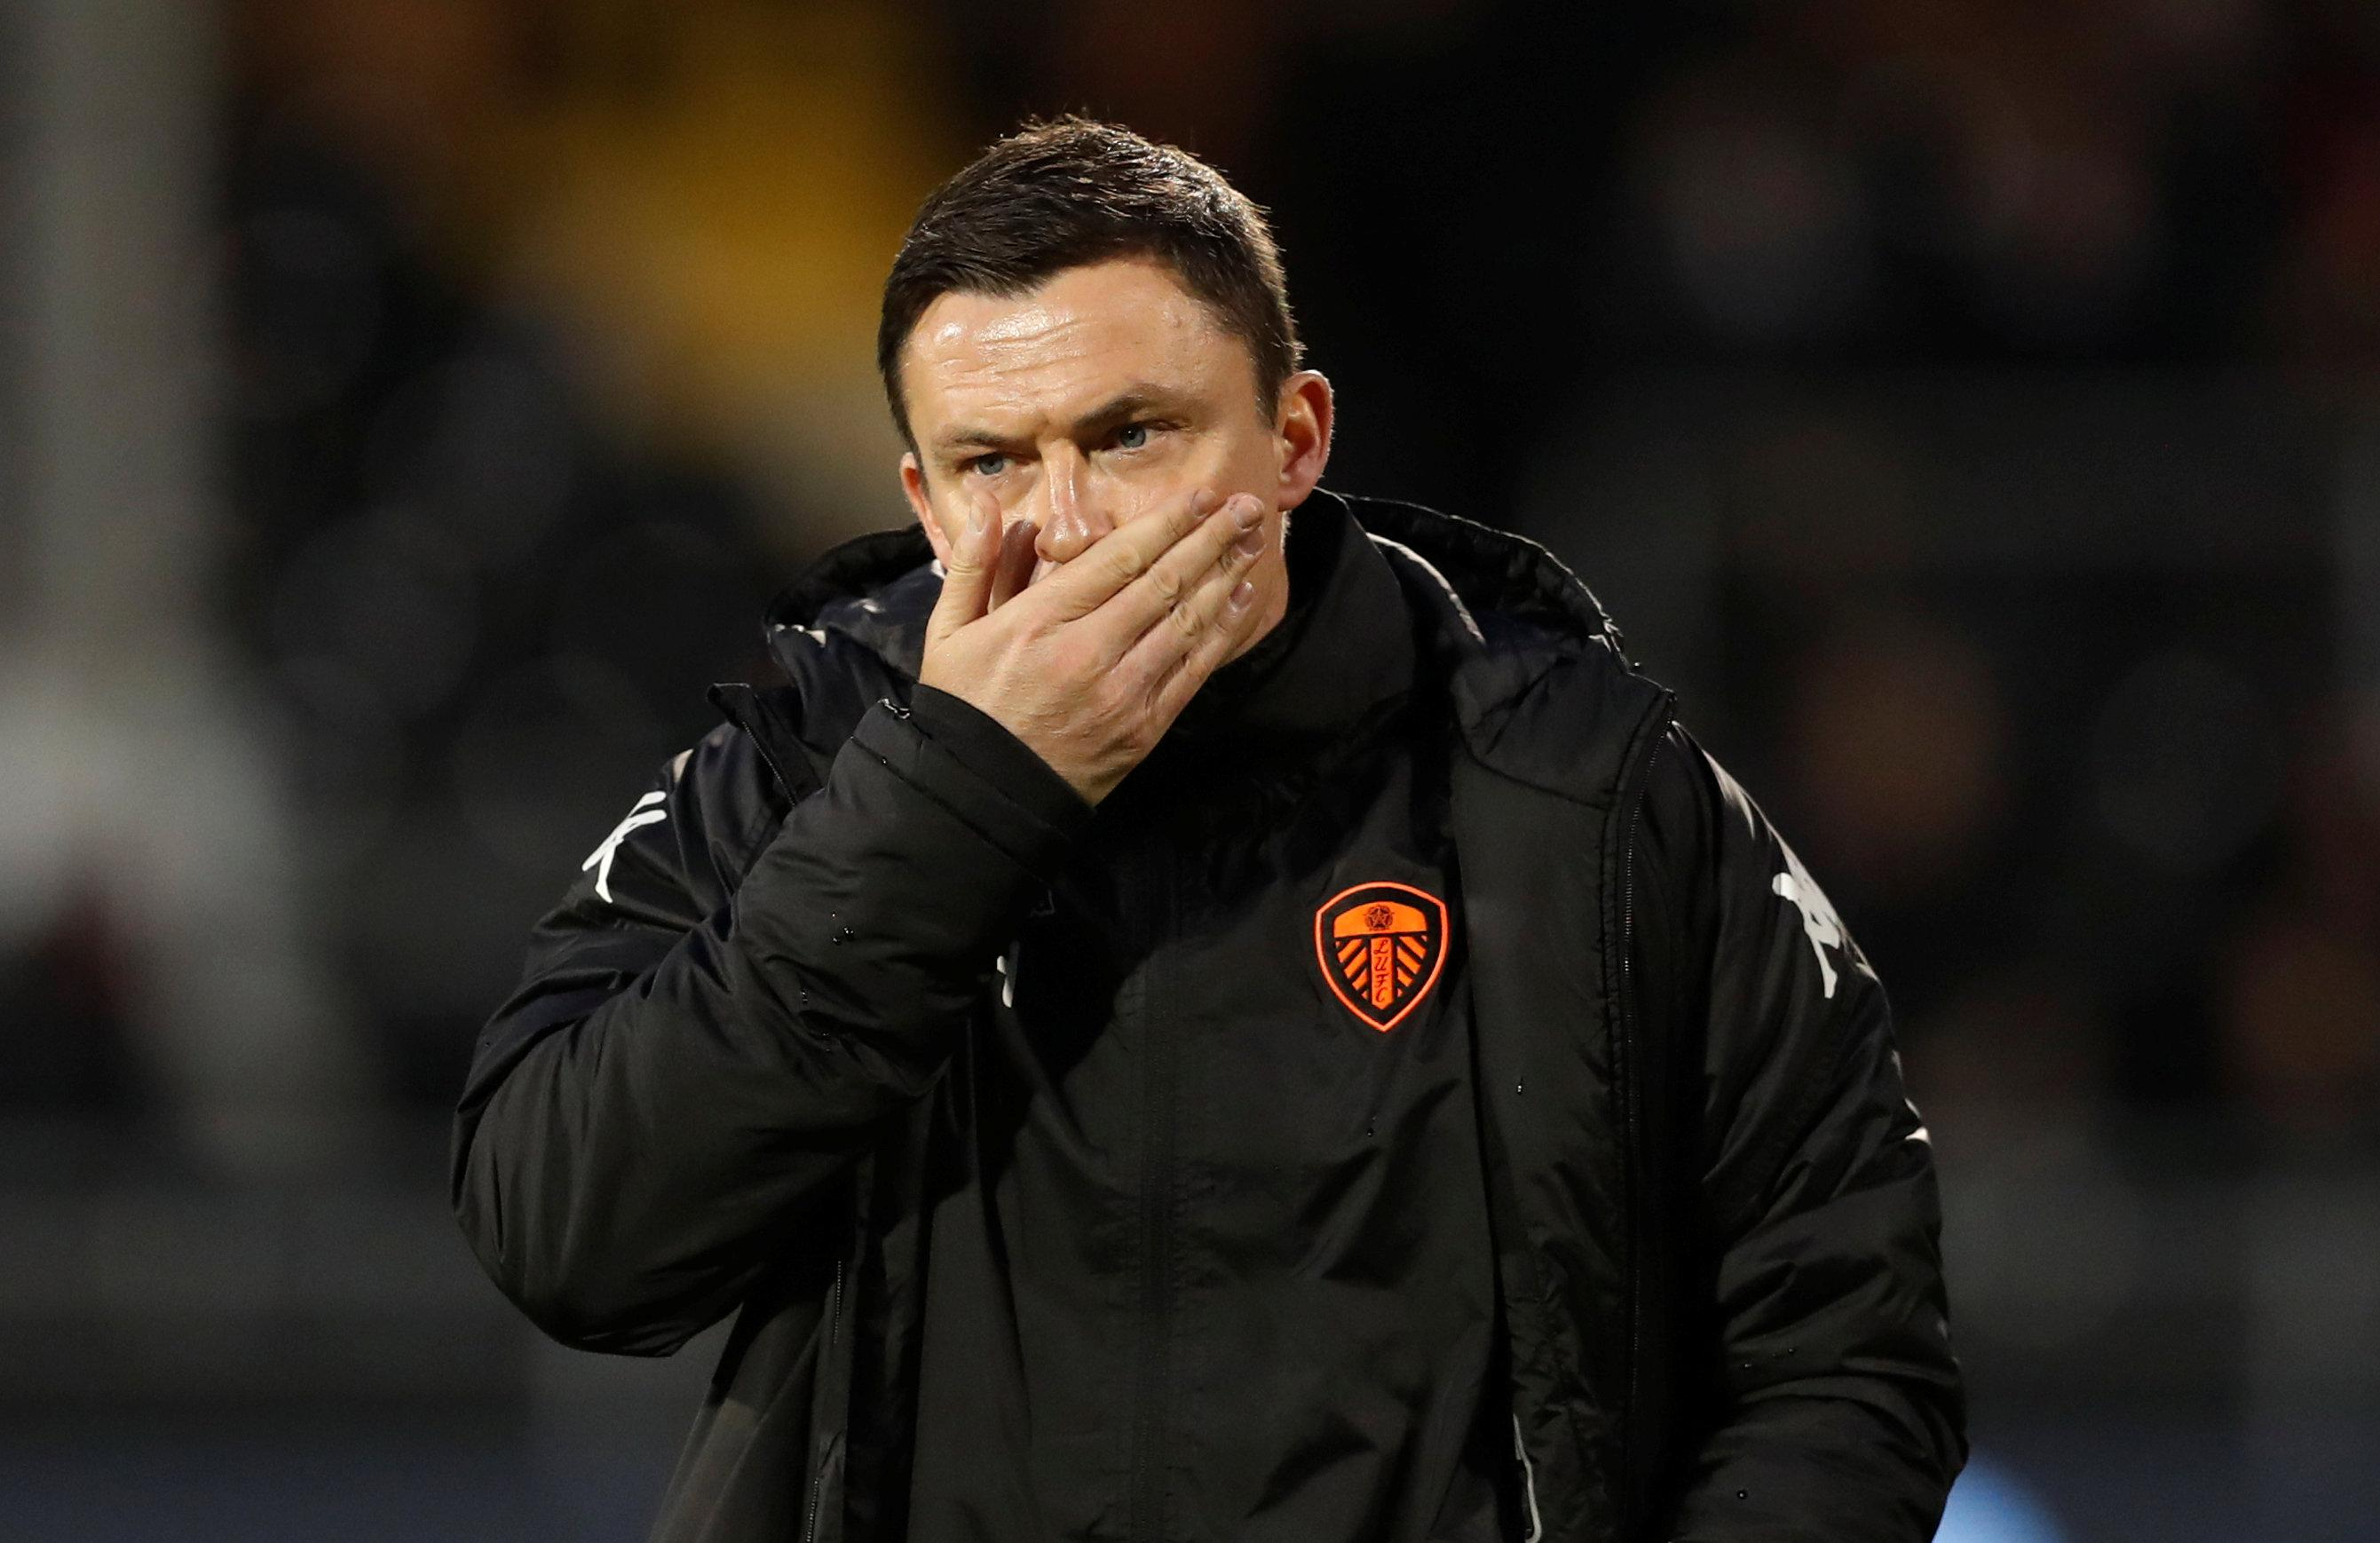 But Paul Heckingbottom's tough time since taking over at Leeds continued with another defeat against Fulham